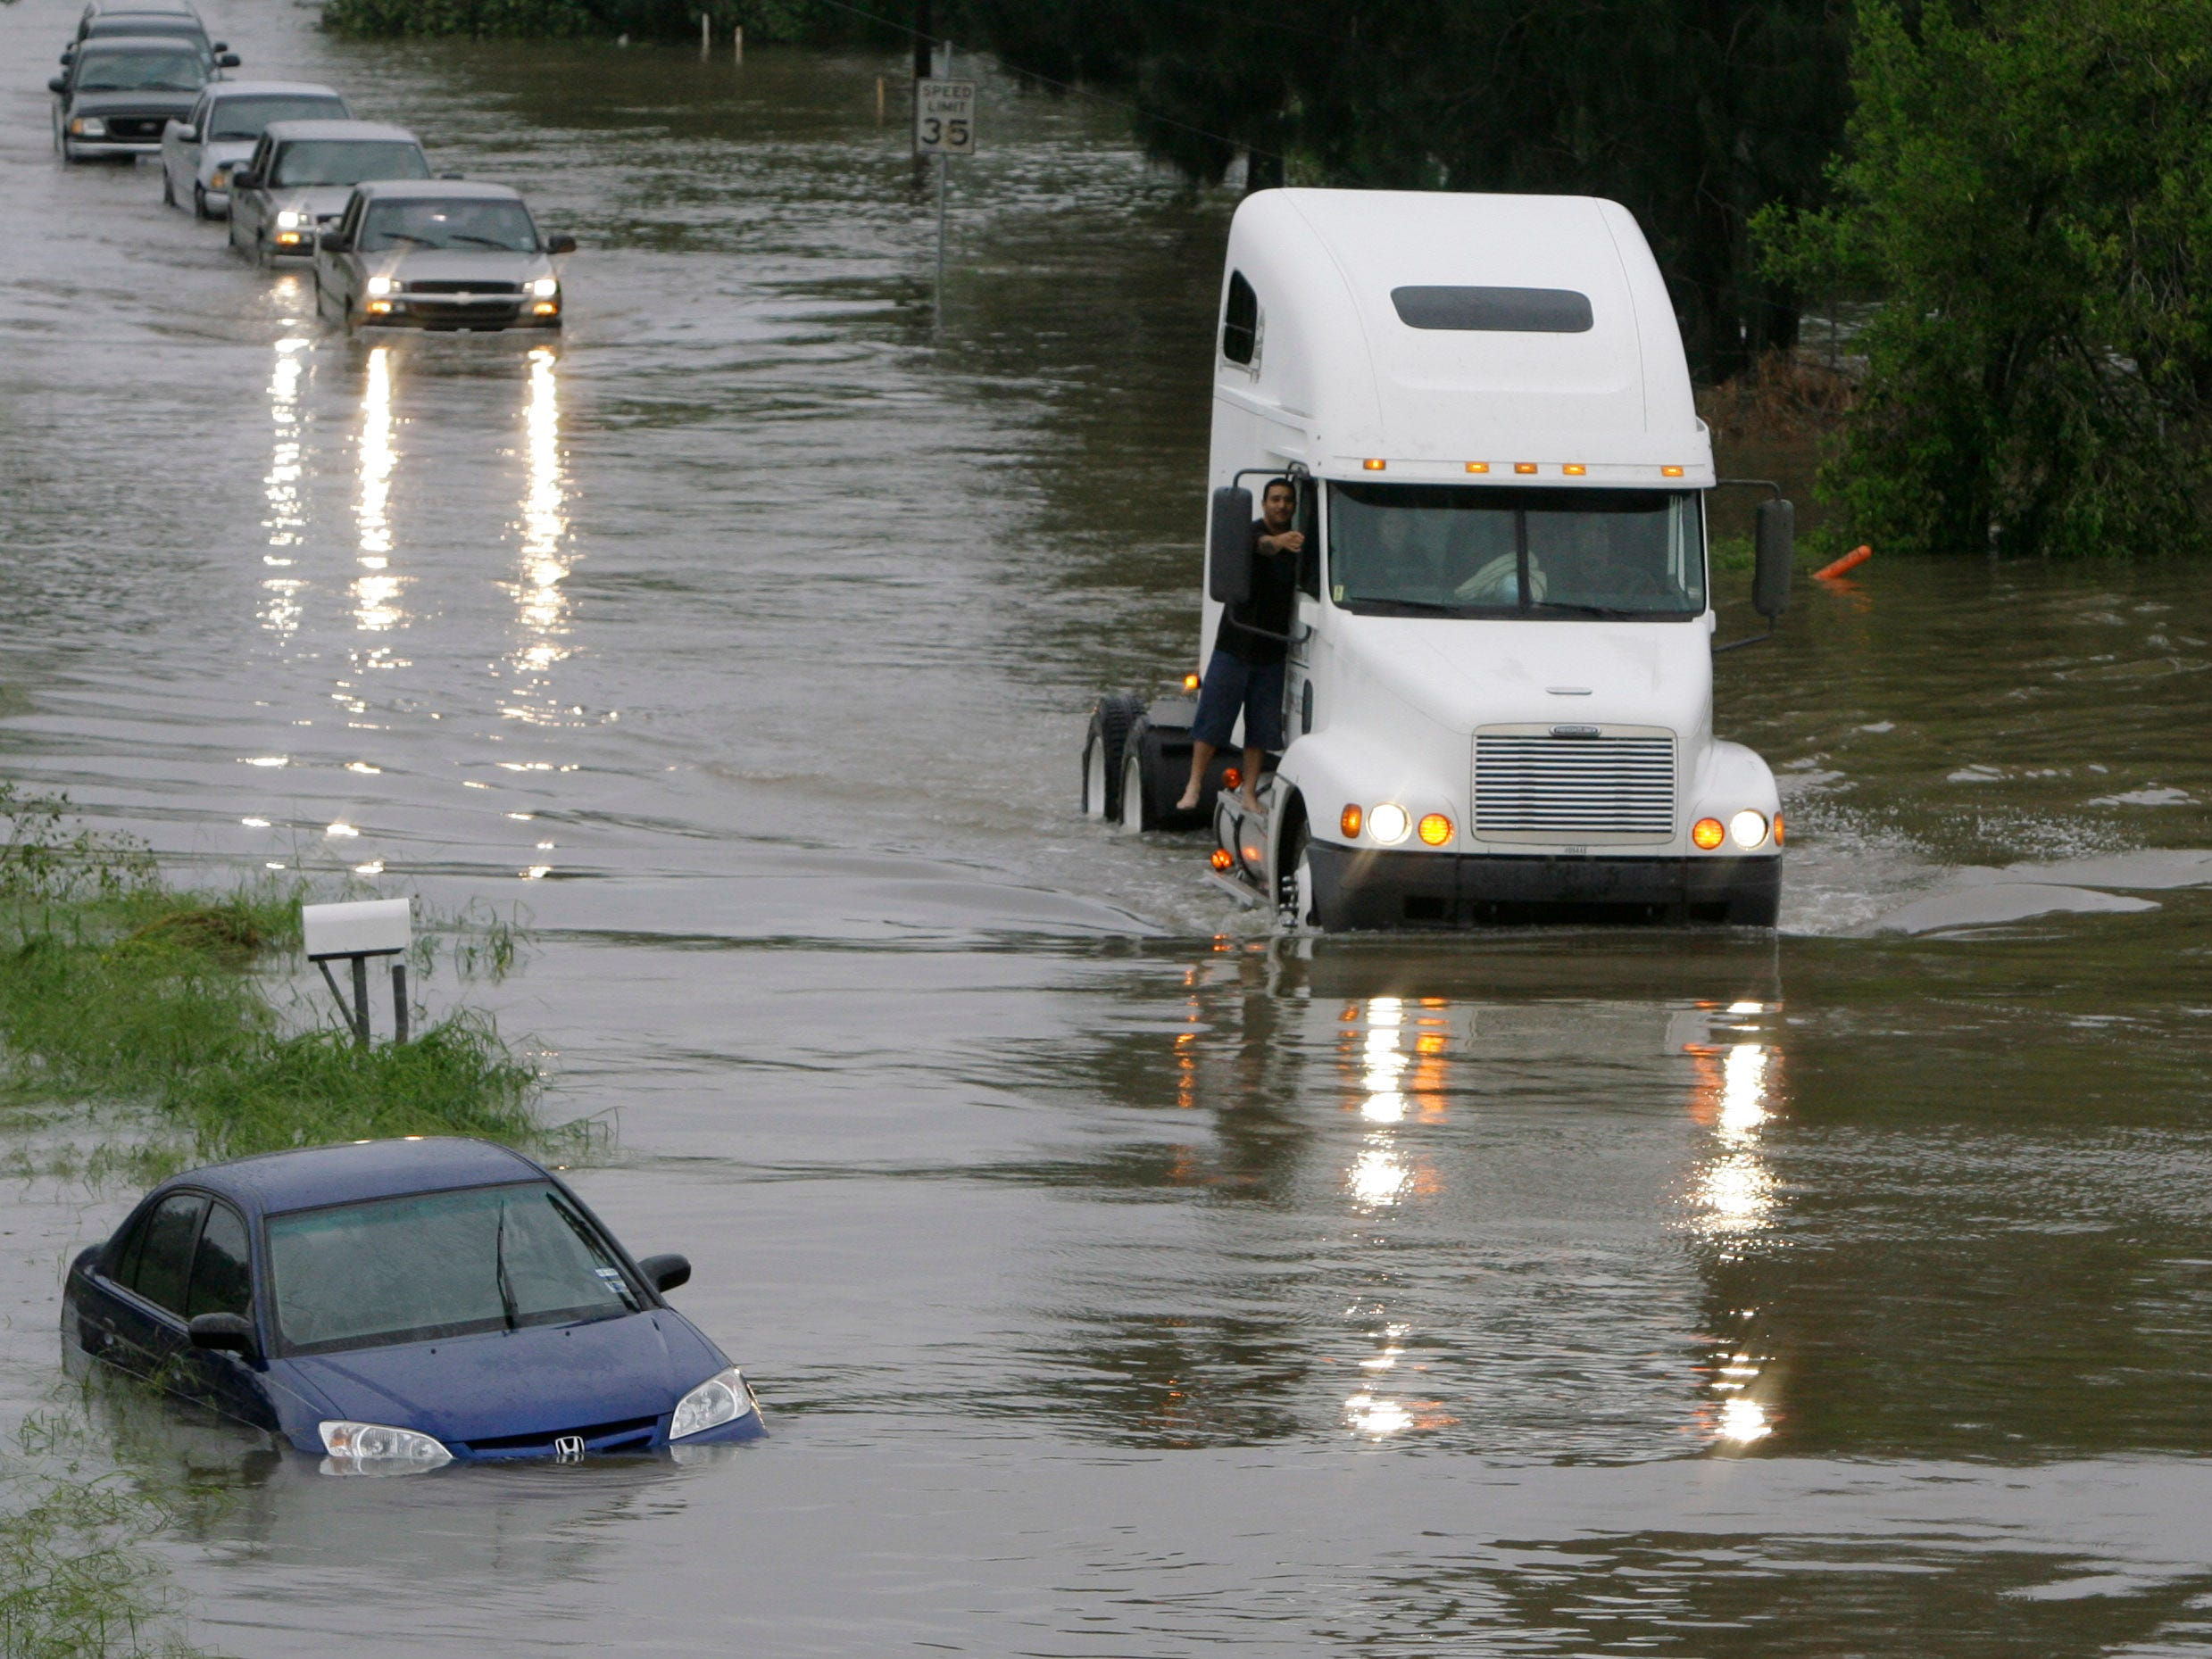 A truck leads a pack of cars down a flooded street after Hurricane Dolly, Thursday, July 24, 2008, in Harlingen, Texas.